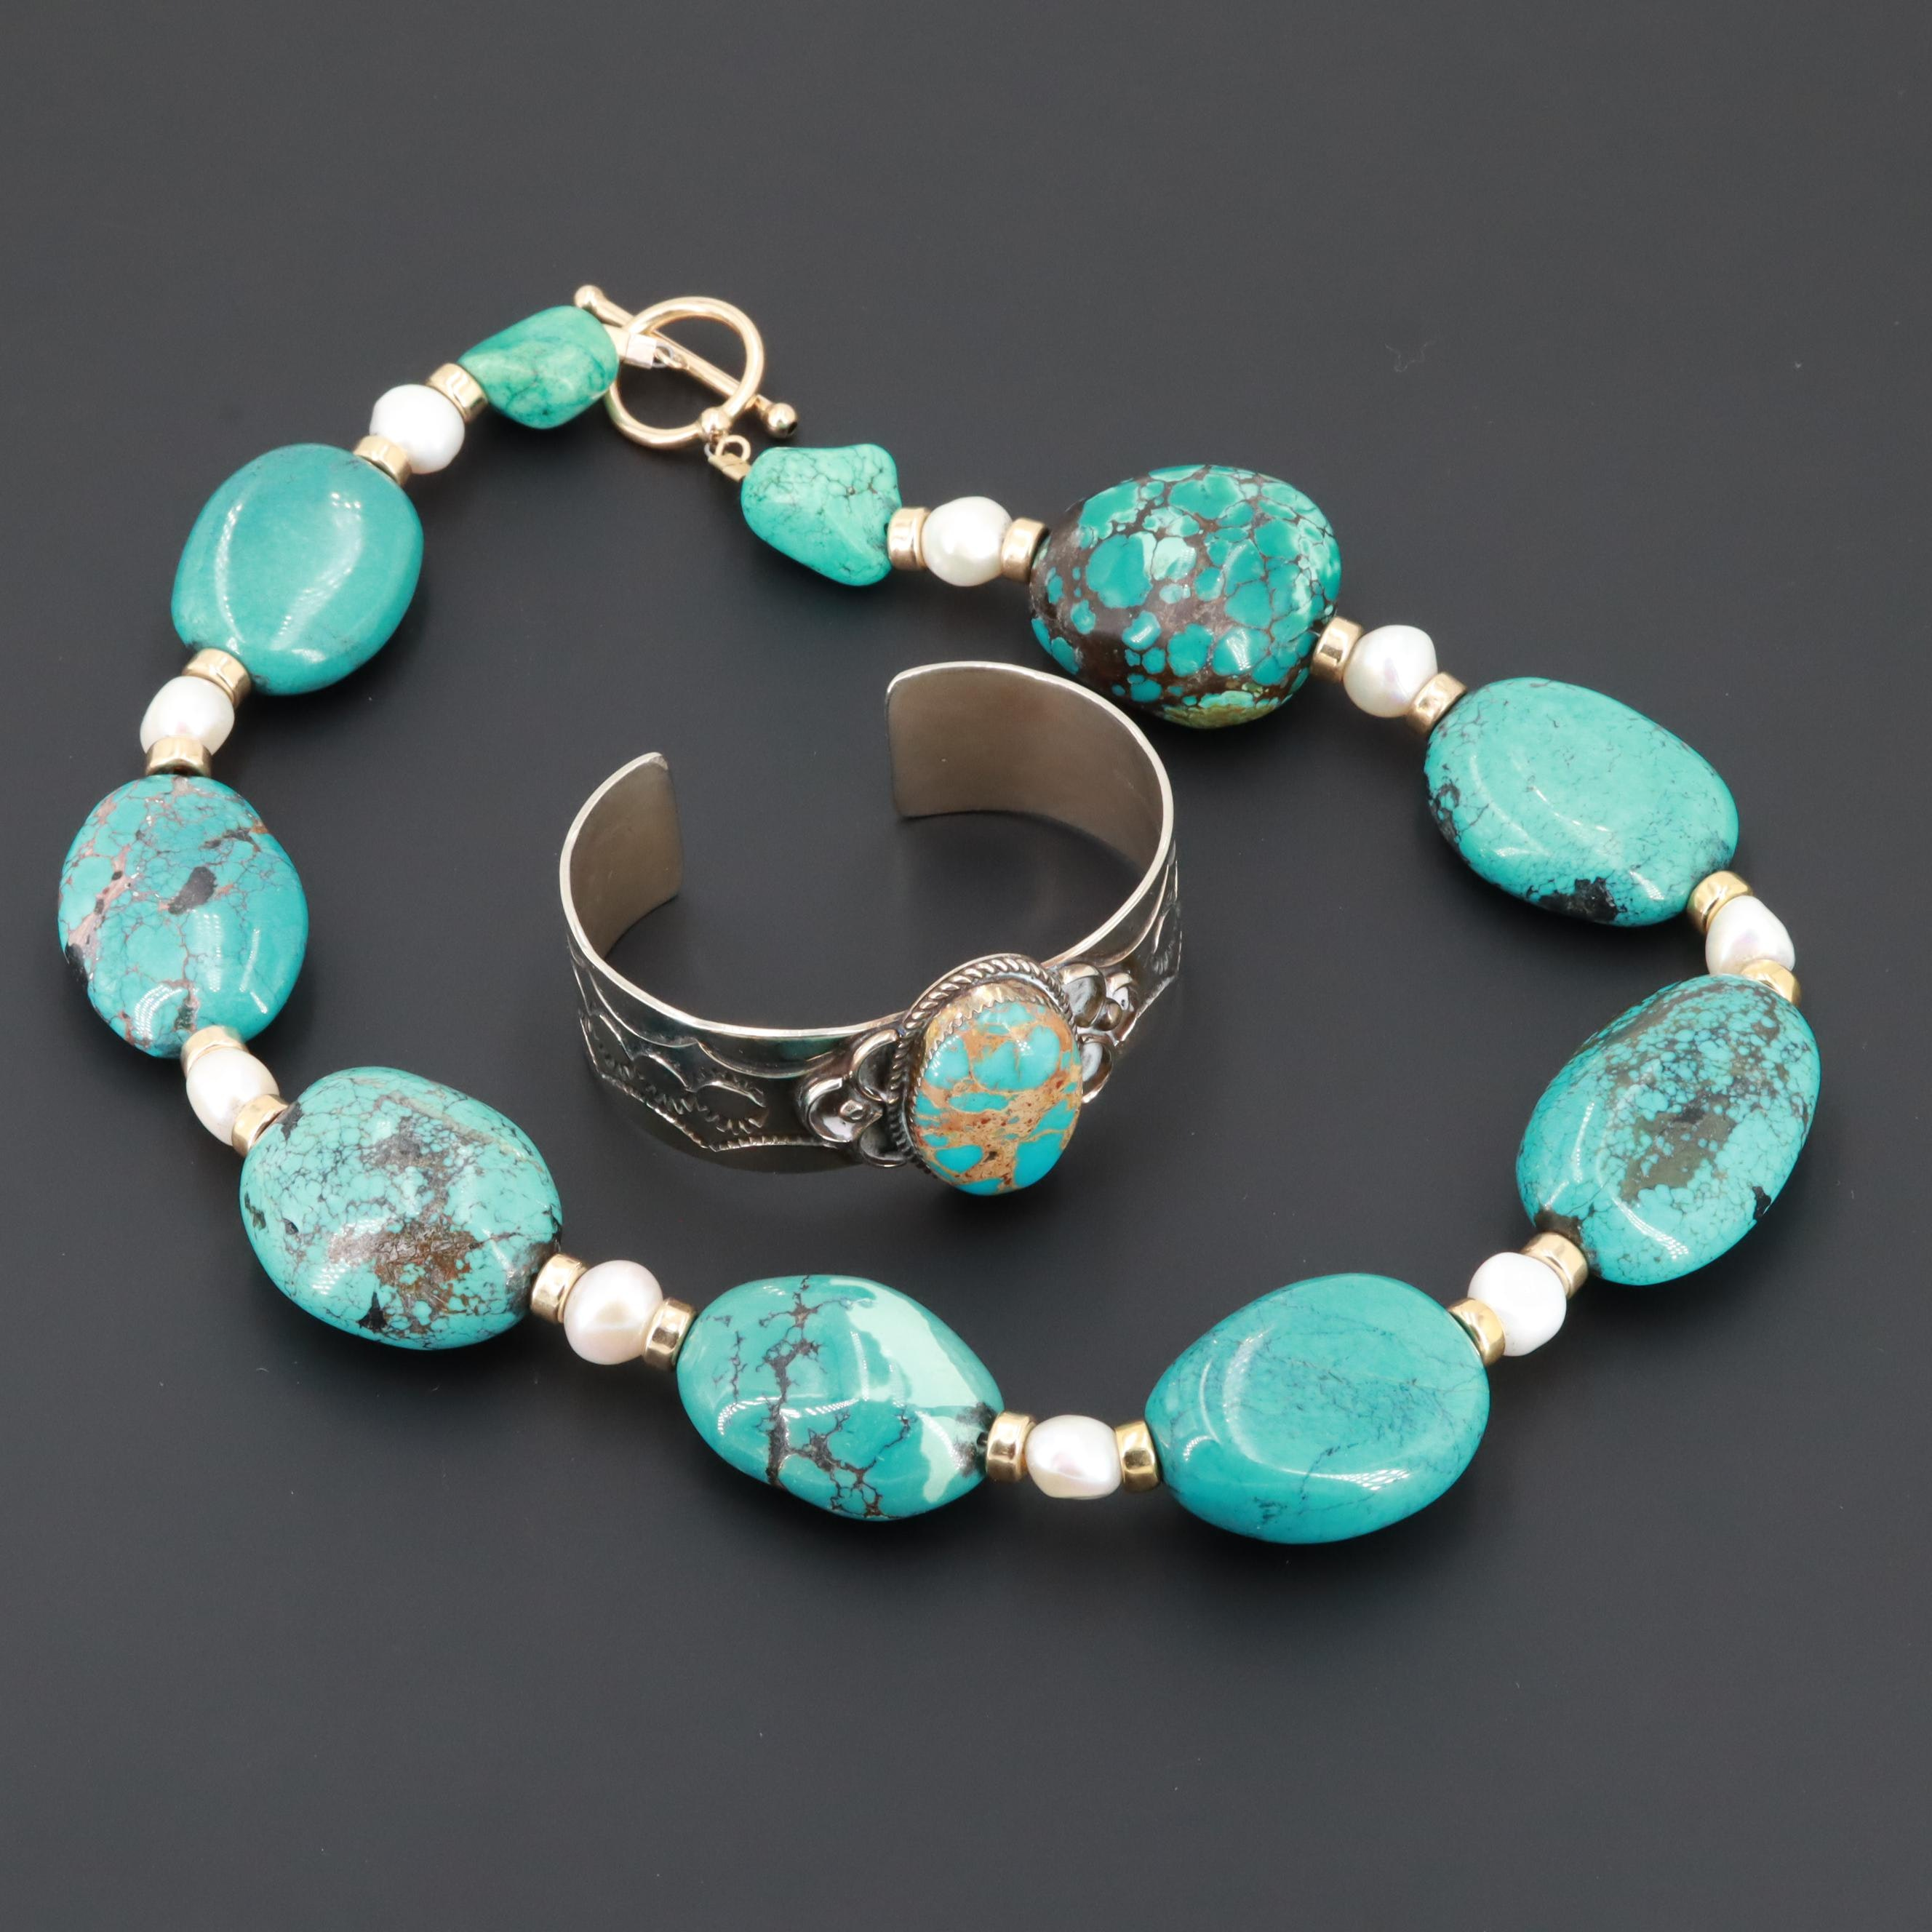 Southwestern Silver Tone Turquoise and Cultured Pearl Bracelet and Necklace